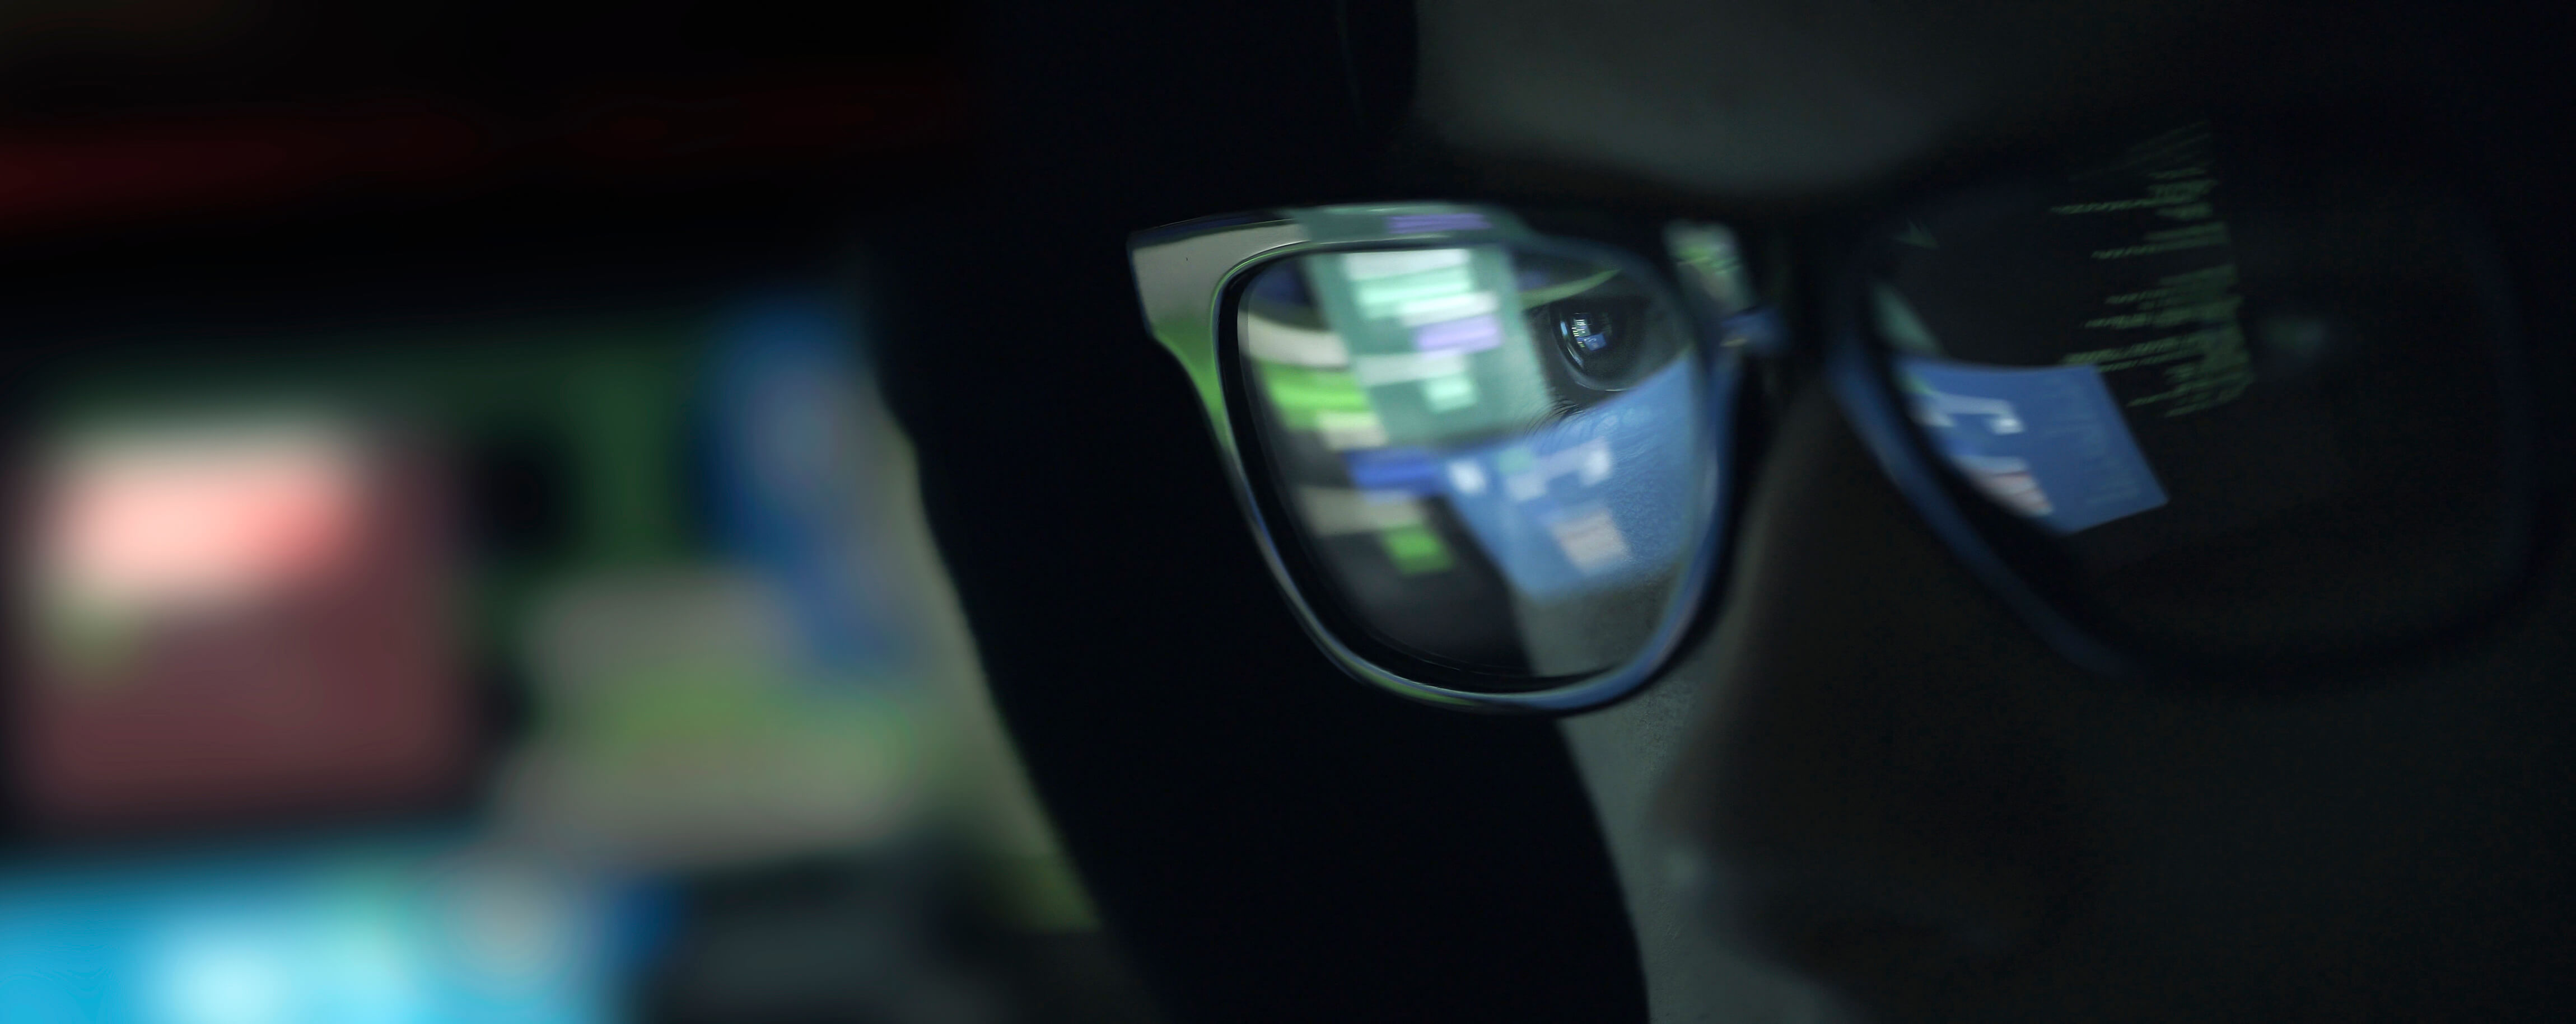 Reflection in glasses of person looking at screen